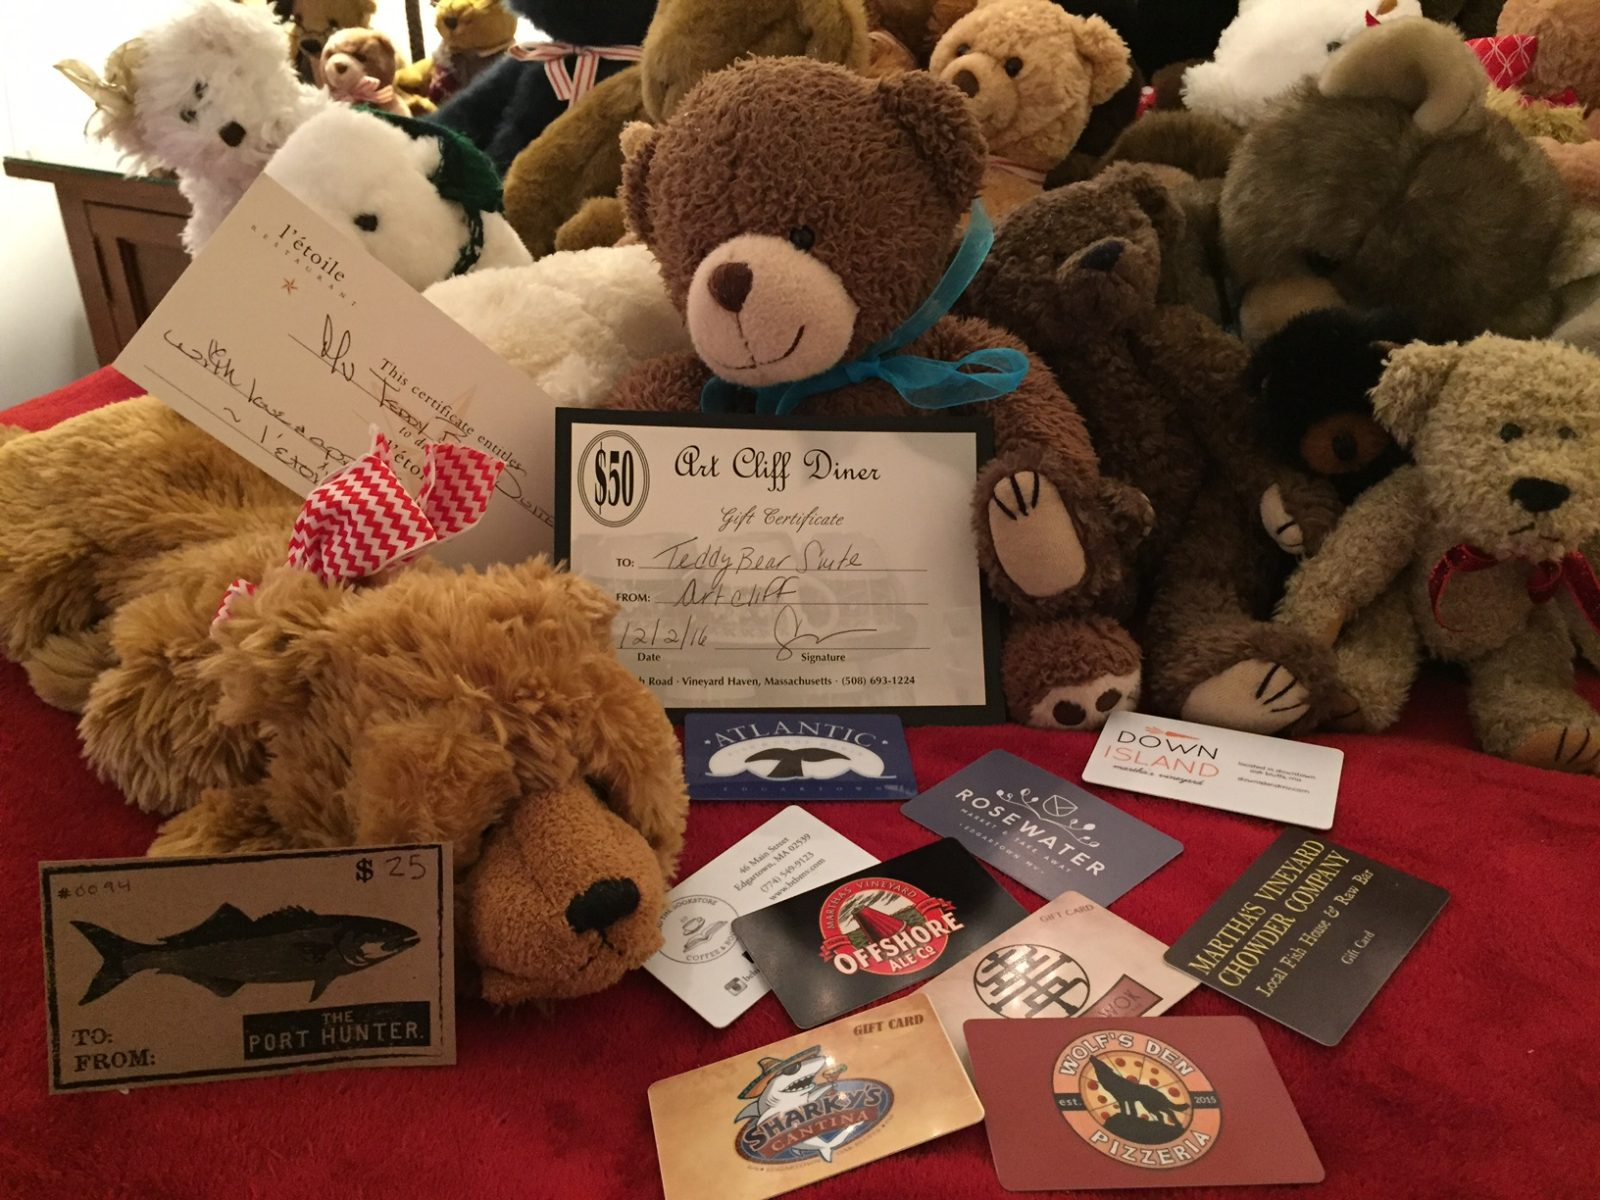 Martha's Vineyard Teddy Bear Suite Raffle - Dining Out Package Martha's Vineyard Restaurants